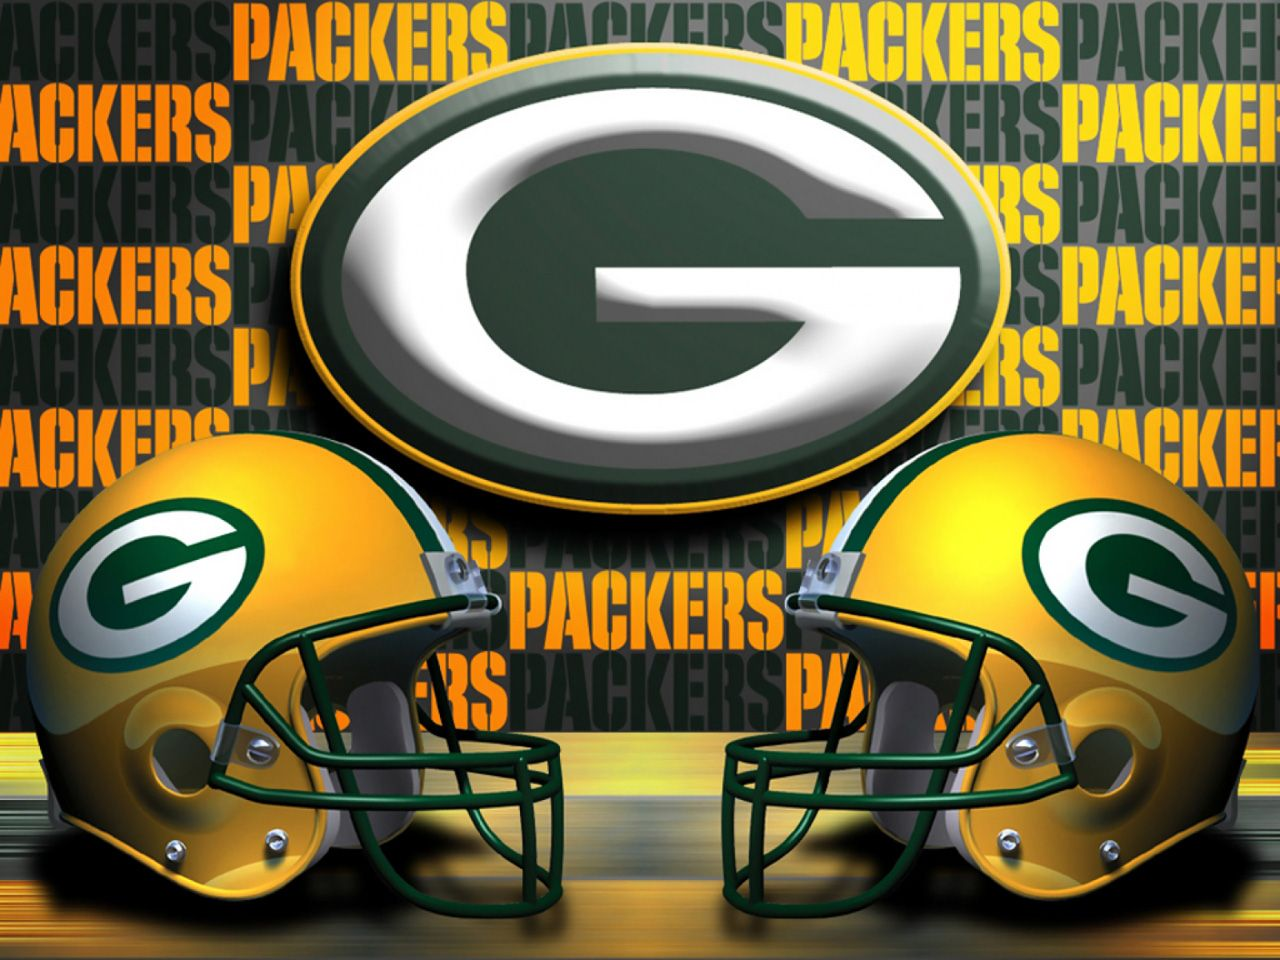 Green Bay Packers Tailgating Bbqsuperstars Com Green Bay Packers Wallpaper Green Bay Packers Helmet Green Bay Packers Pictures